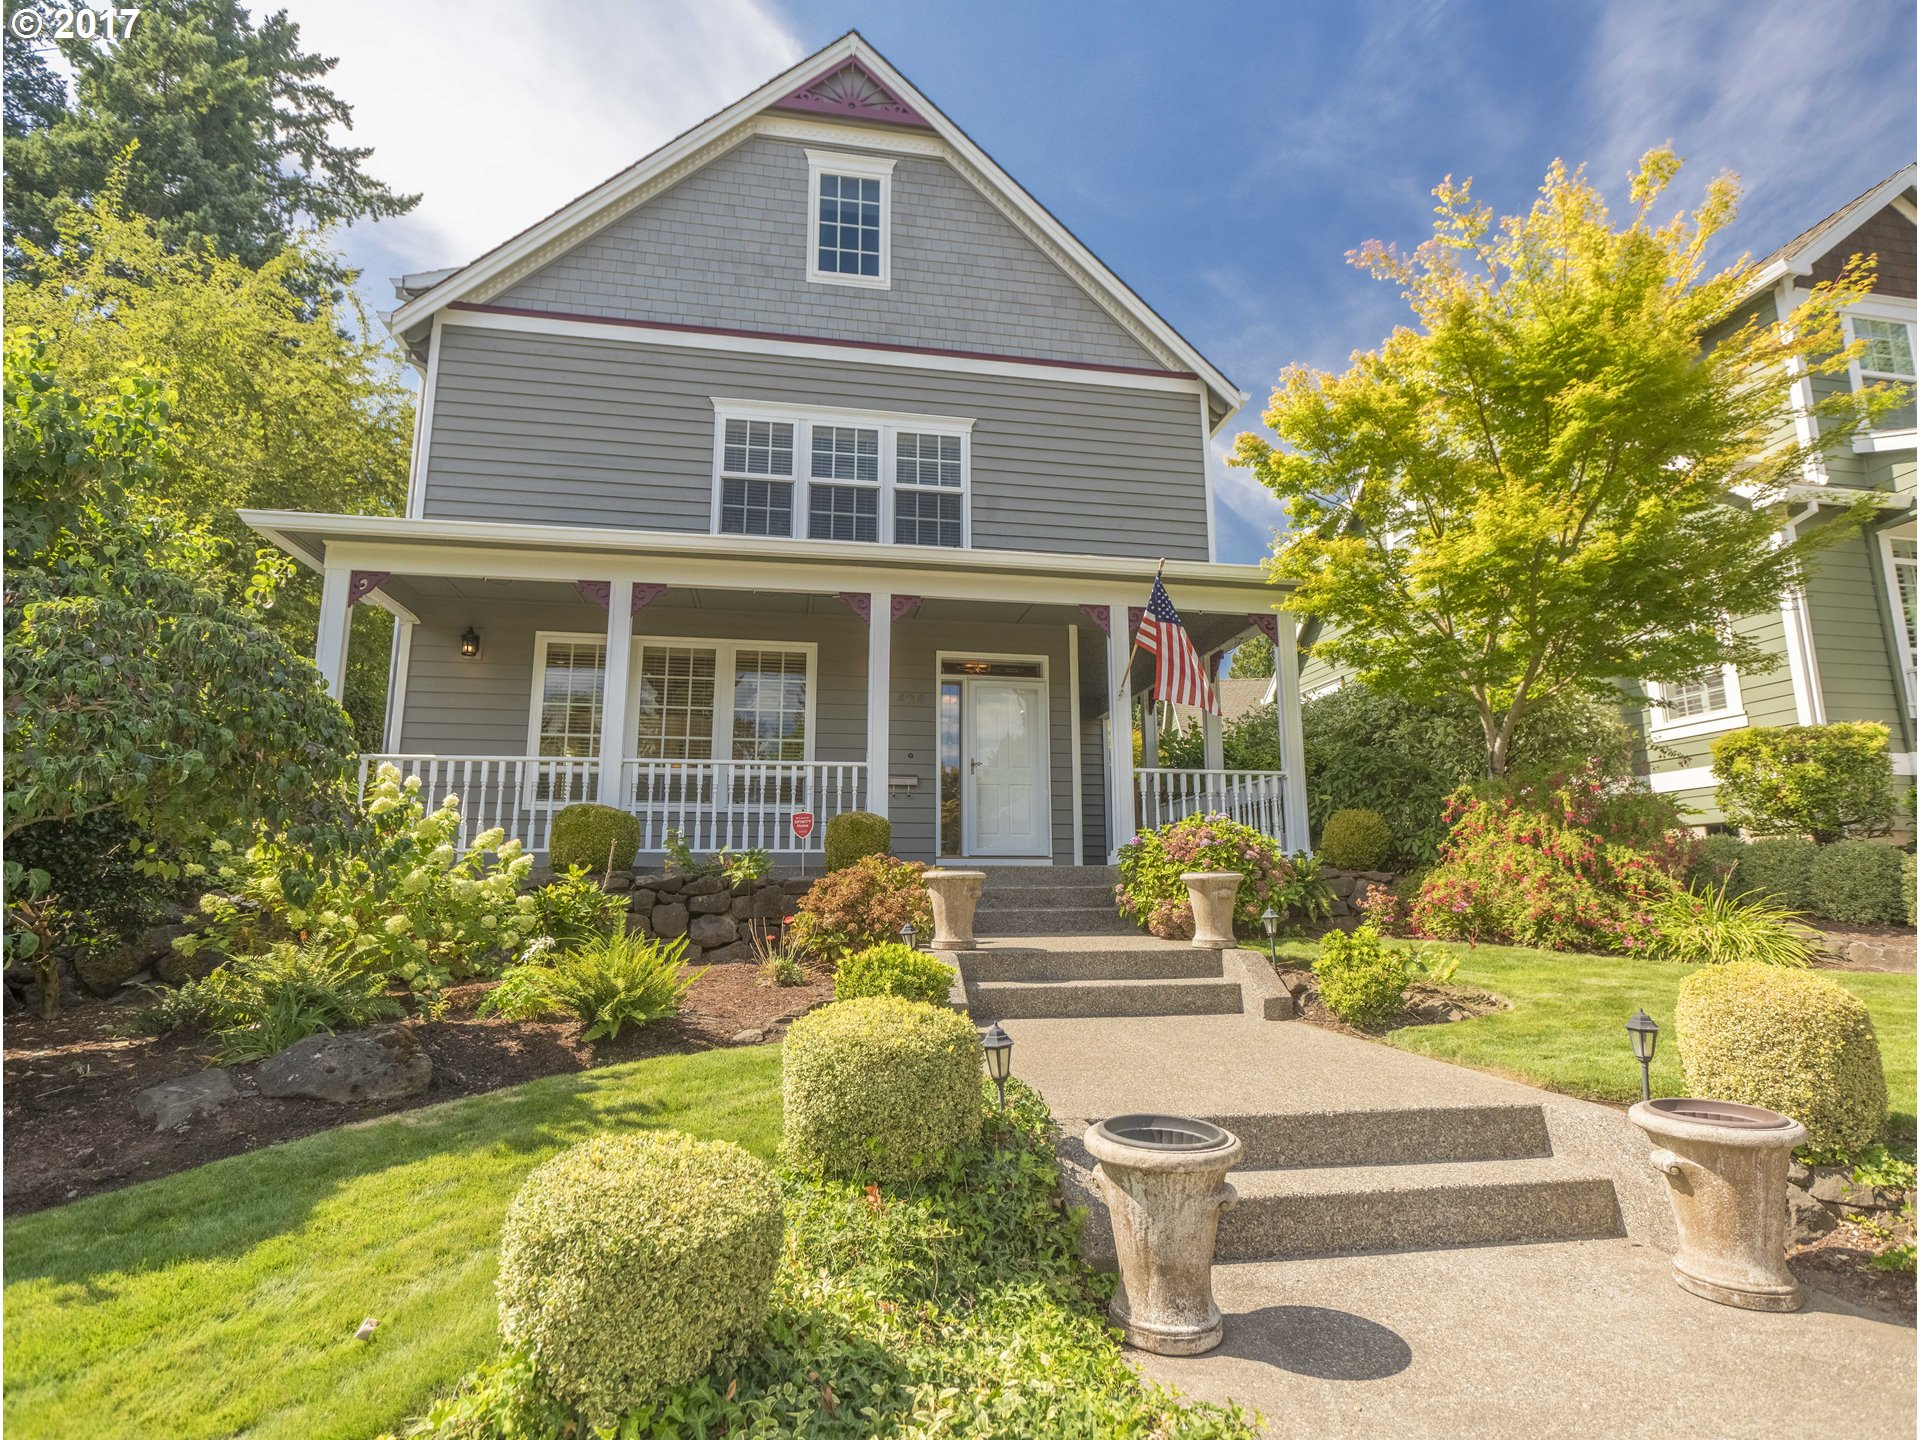 426 7TH ST, Lake Oswego, OR 97034